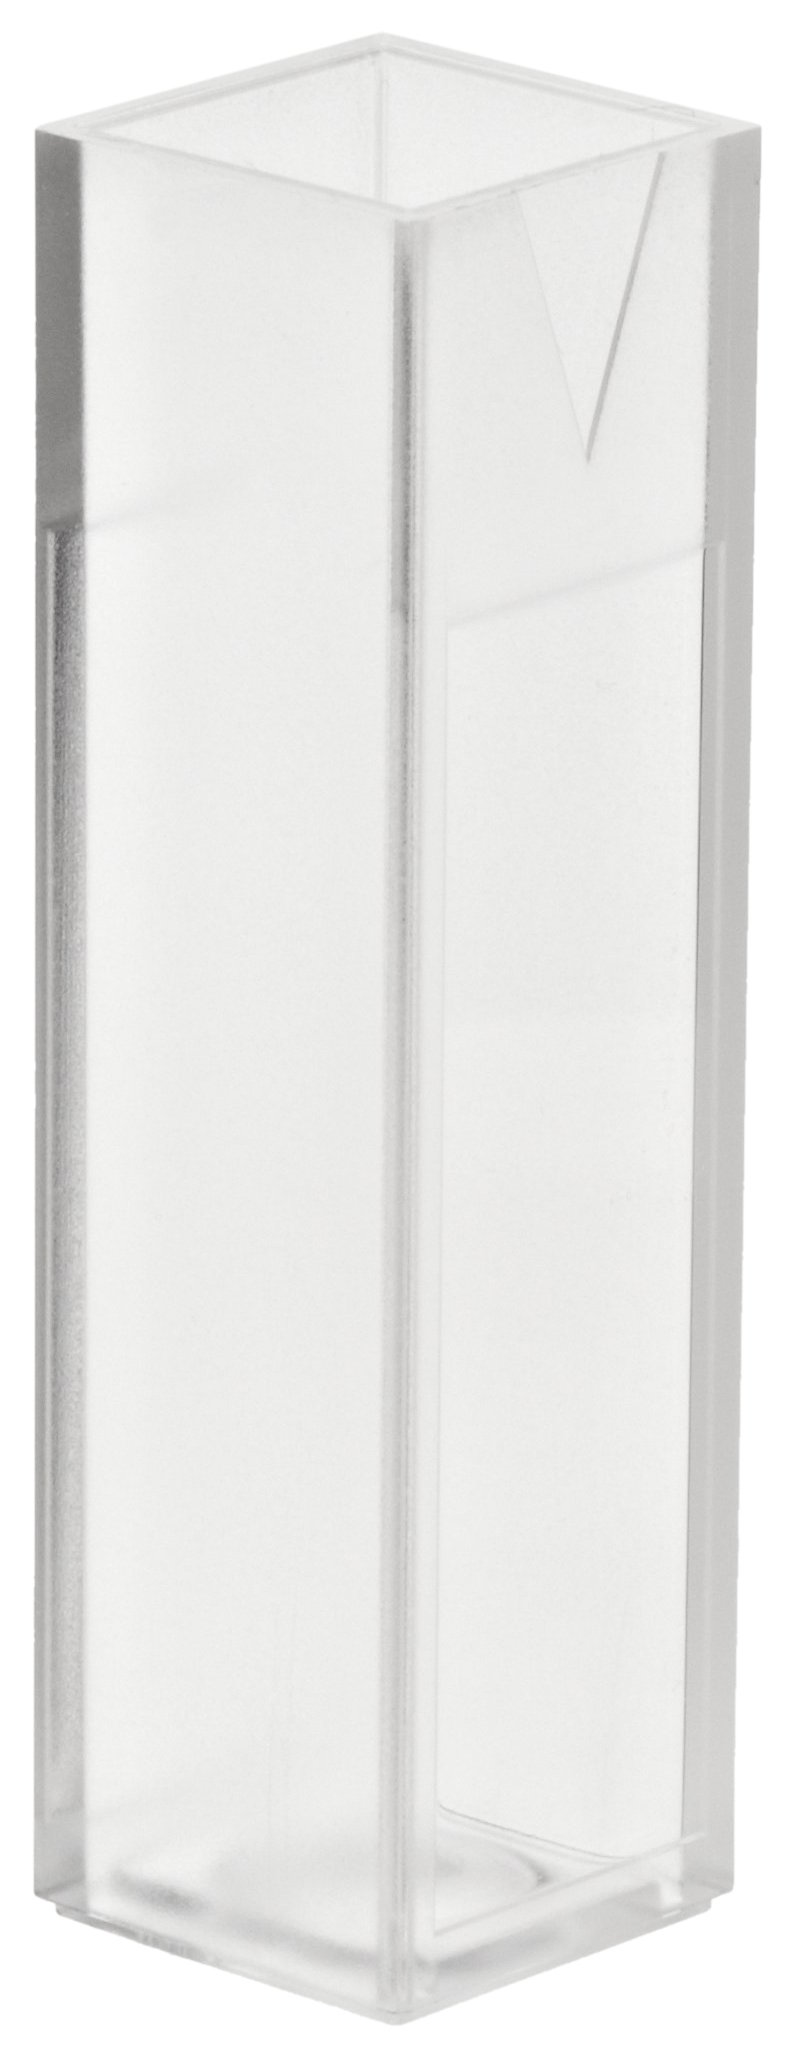 BrandTech 759081D PMMA ''acrylic'' 2.5-4.5ml Macro Spectrophotometry Cuvette (Pack of 100) by BrandTech